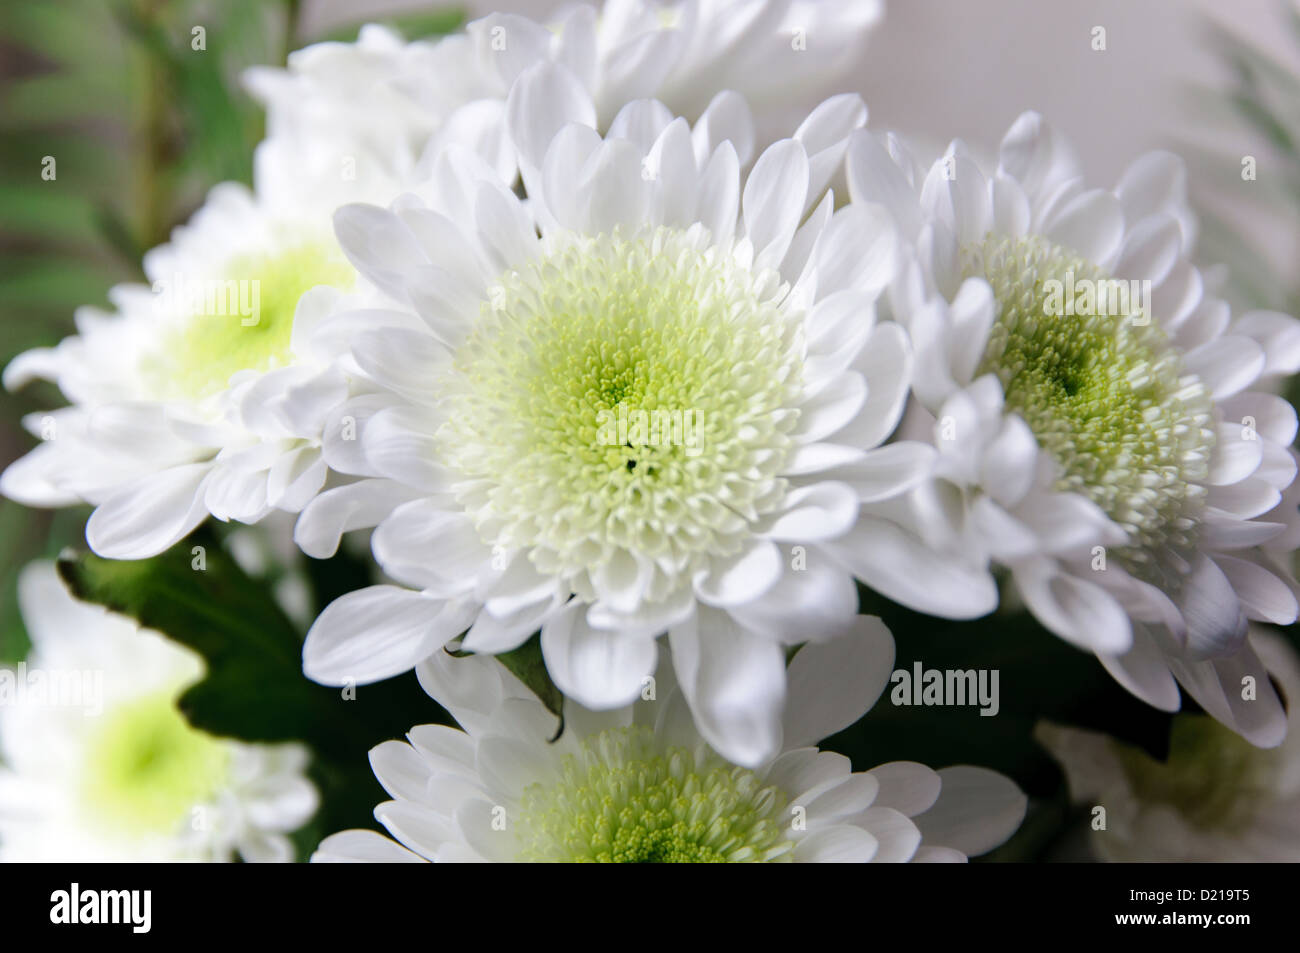 White flowers flower bouquet - Stock Image